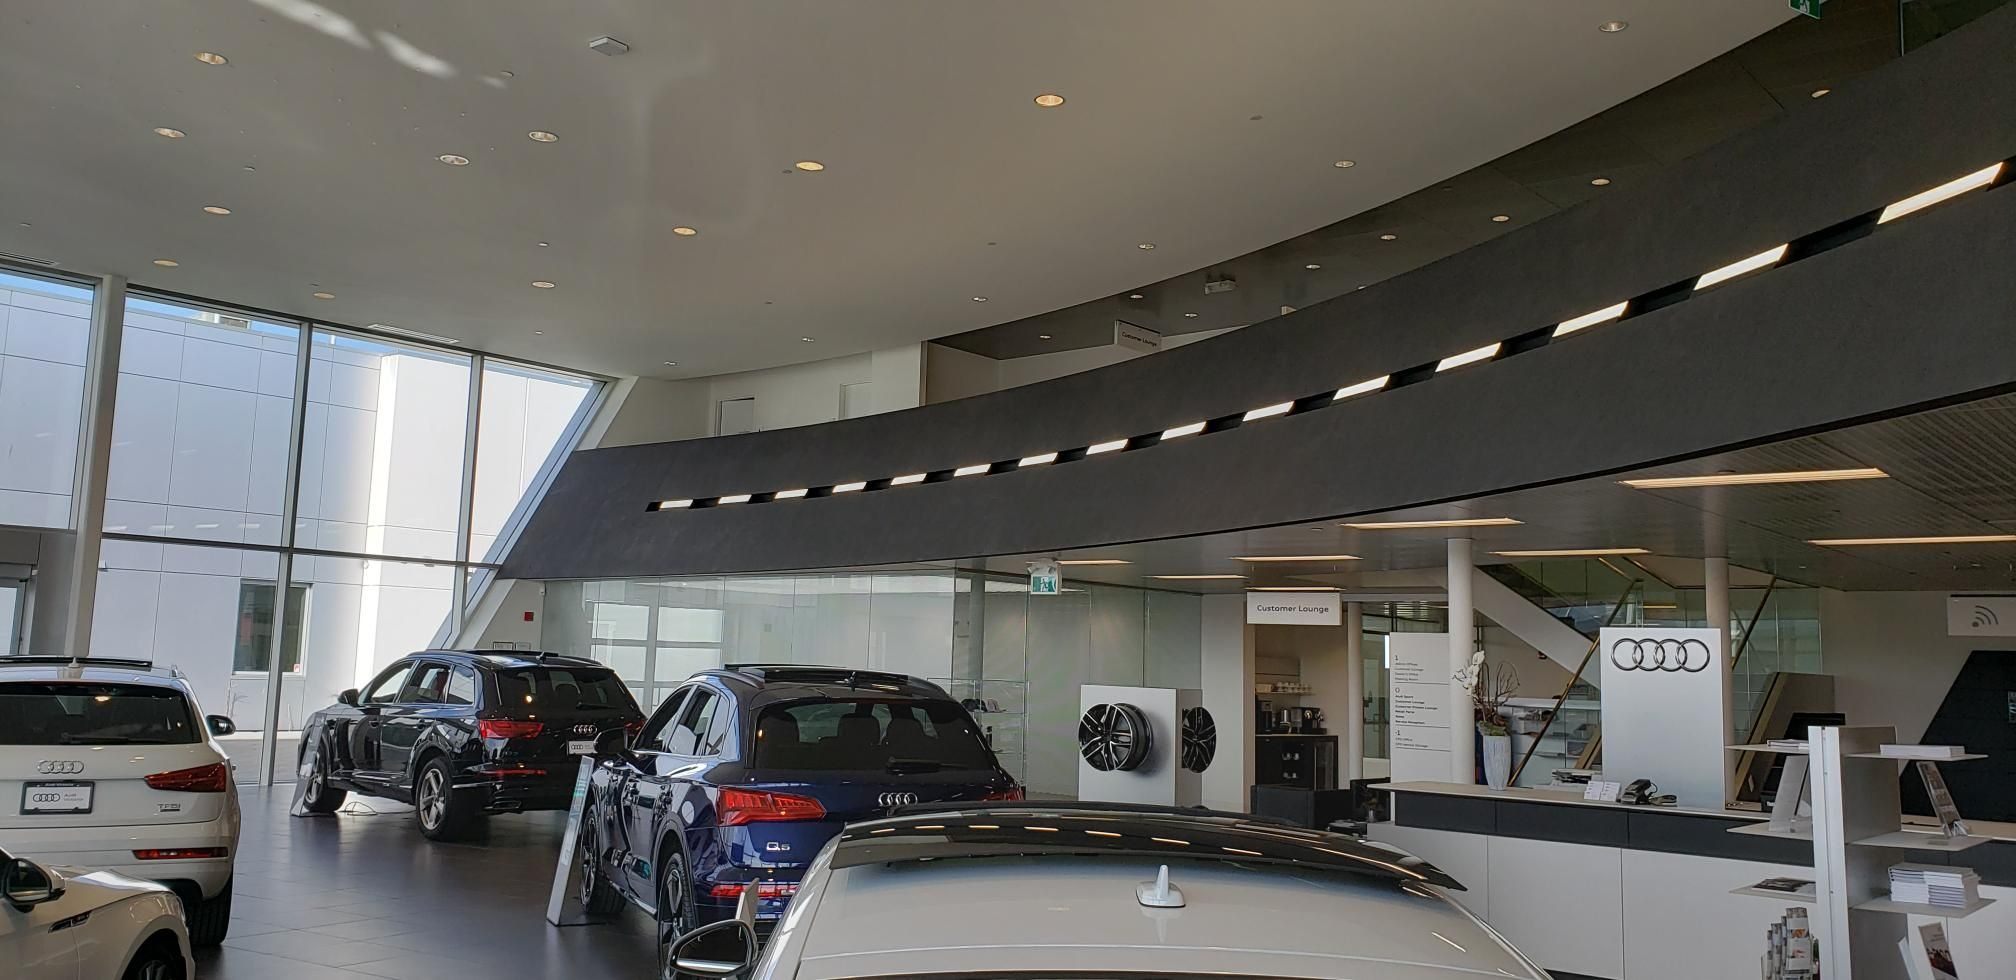 At our rancho mirage, ca audi dealership, we carry a wide selection of both new and used cars for shoppers to explore. StoDecocoat, Audi dealership | Audi dealership, Audi ...